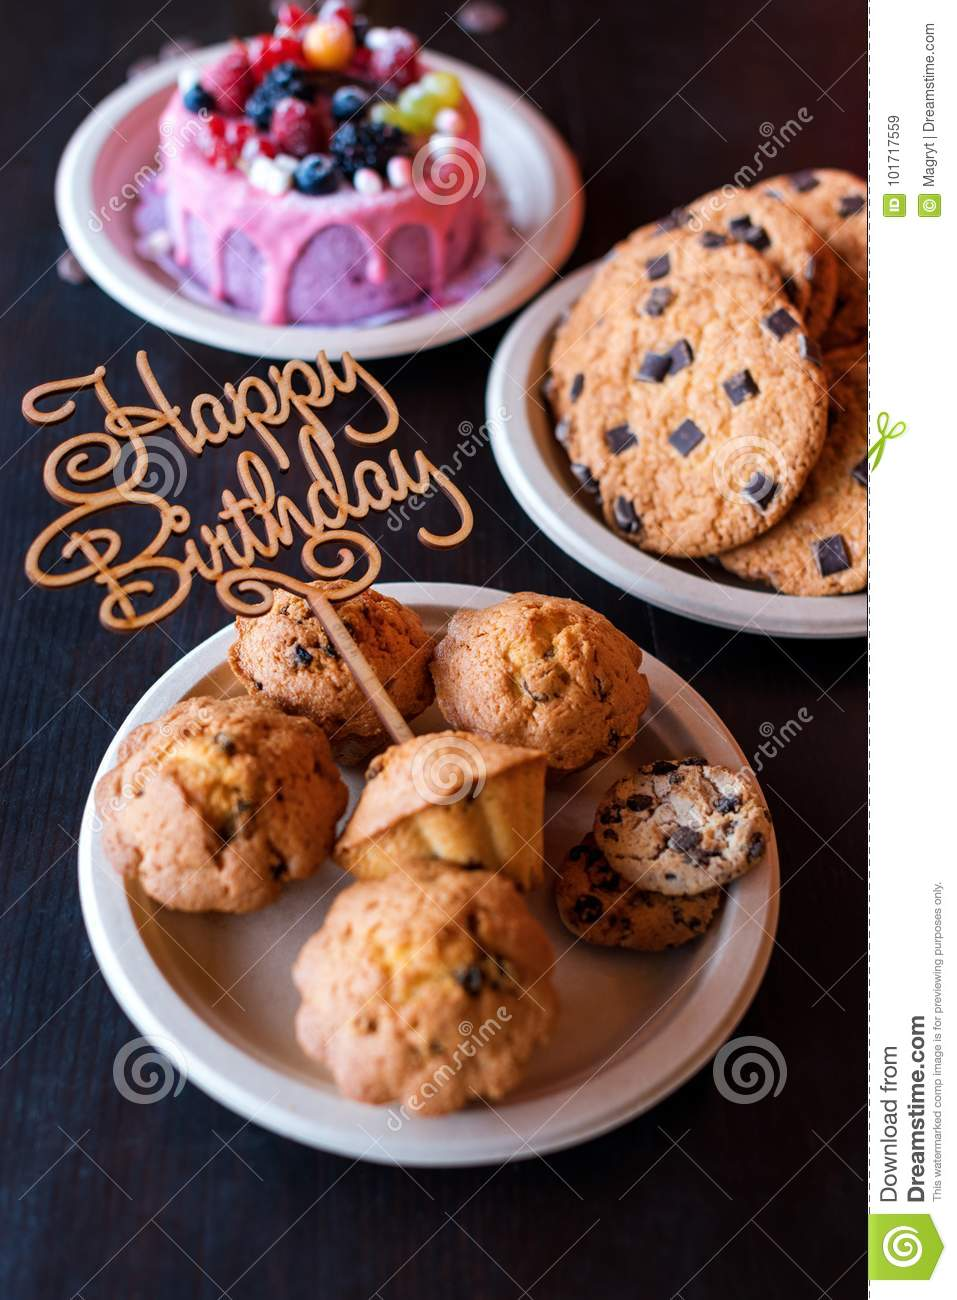 Birthday Cake And Muffins With Wooden Greeting Sign On Rustic Background Sing Letters